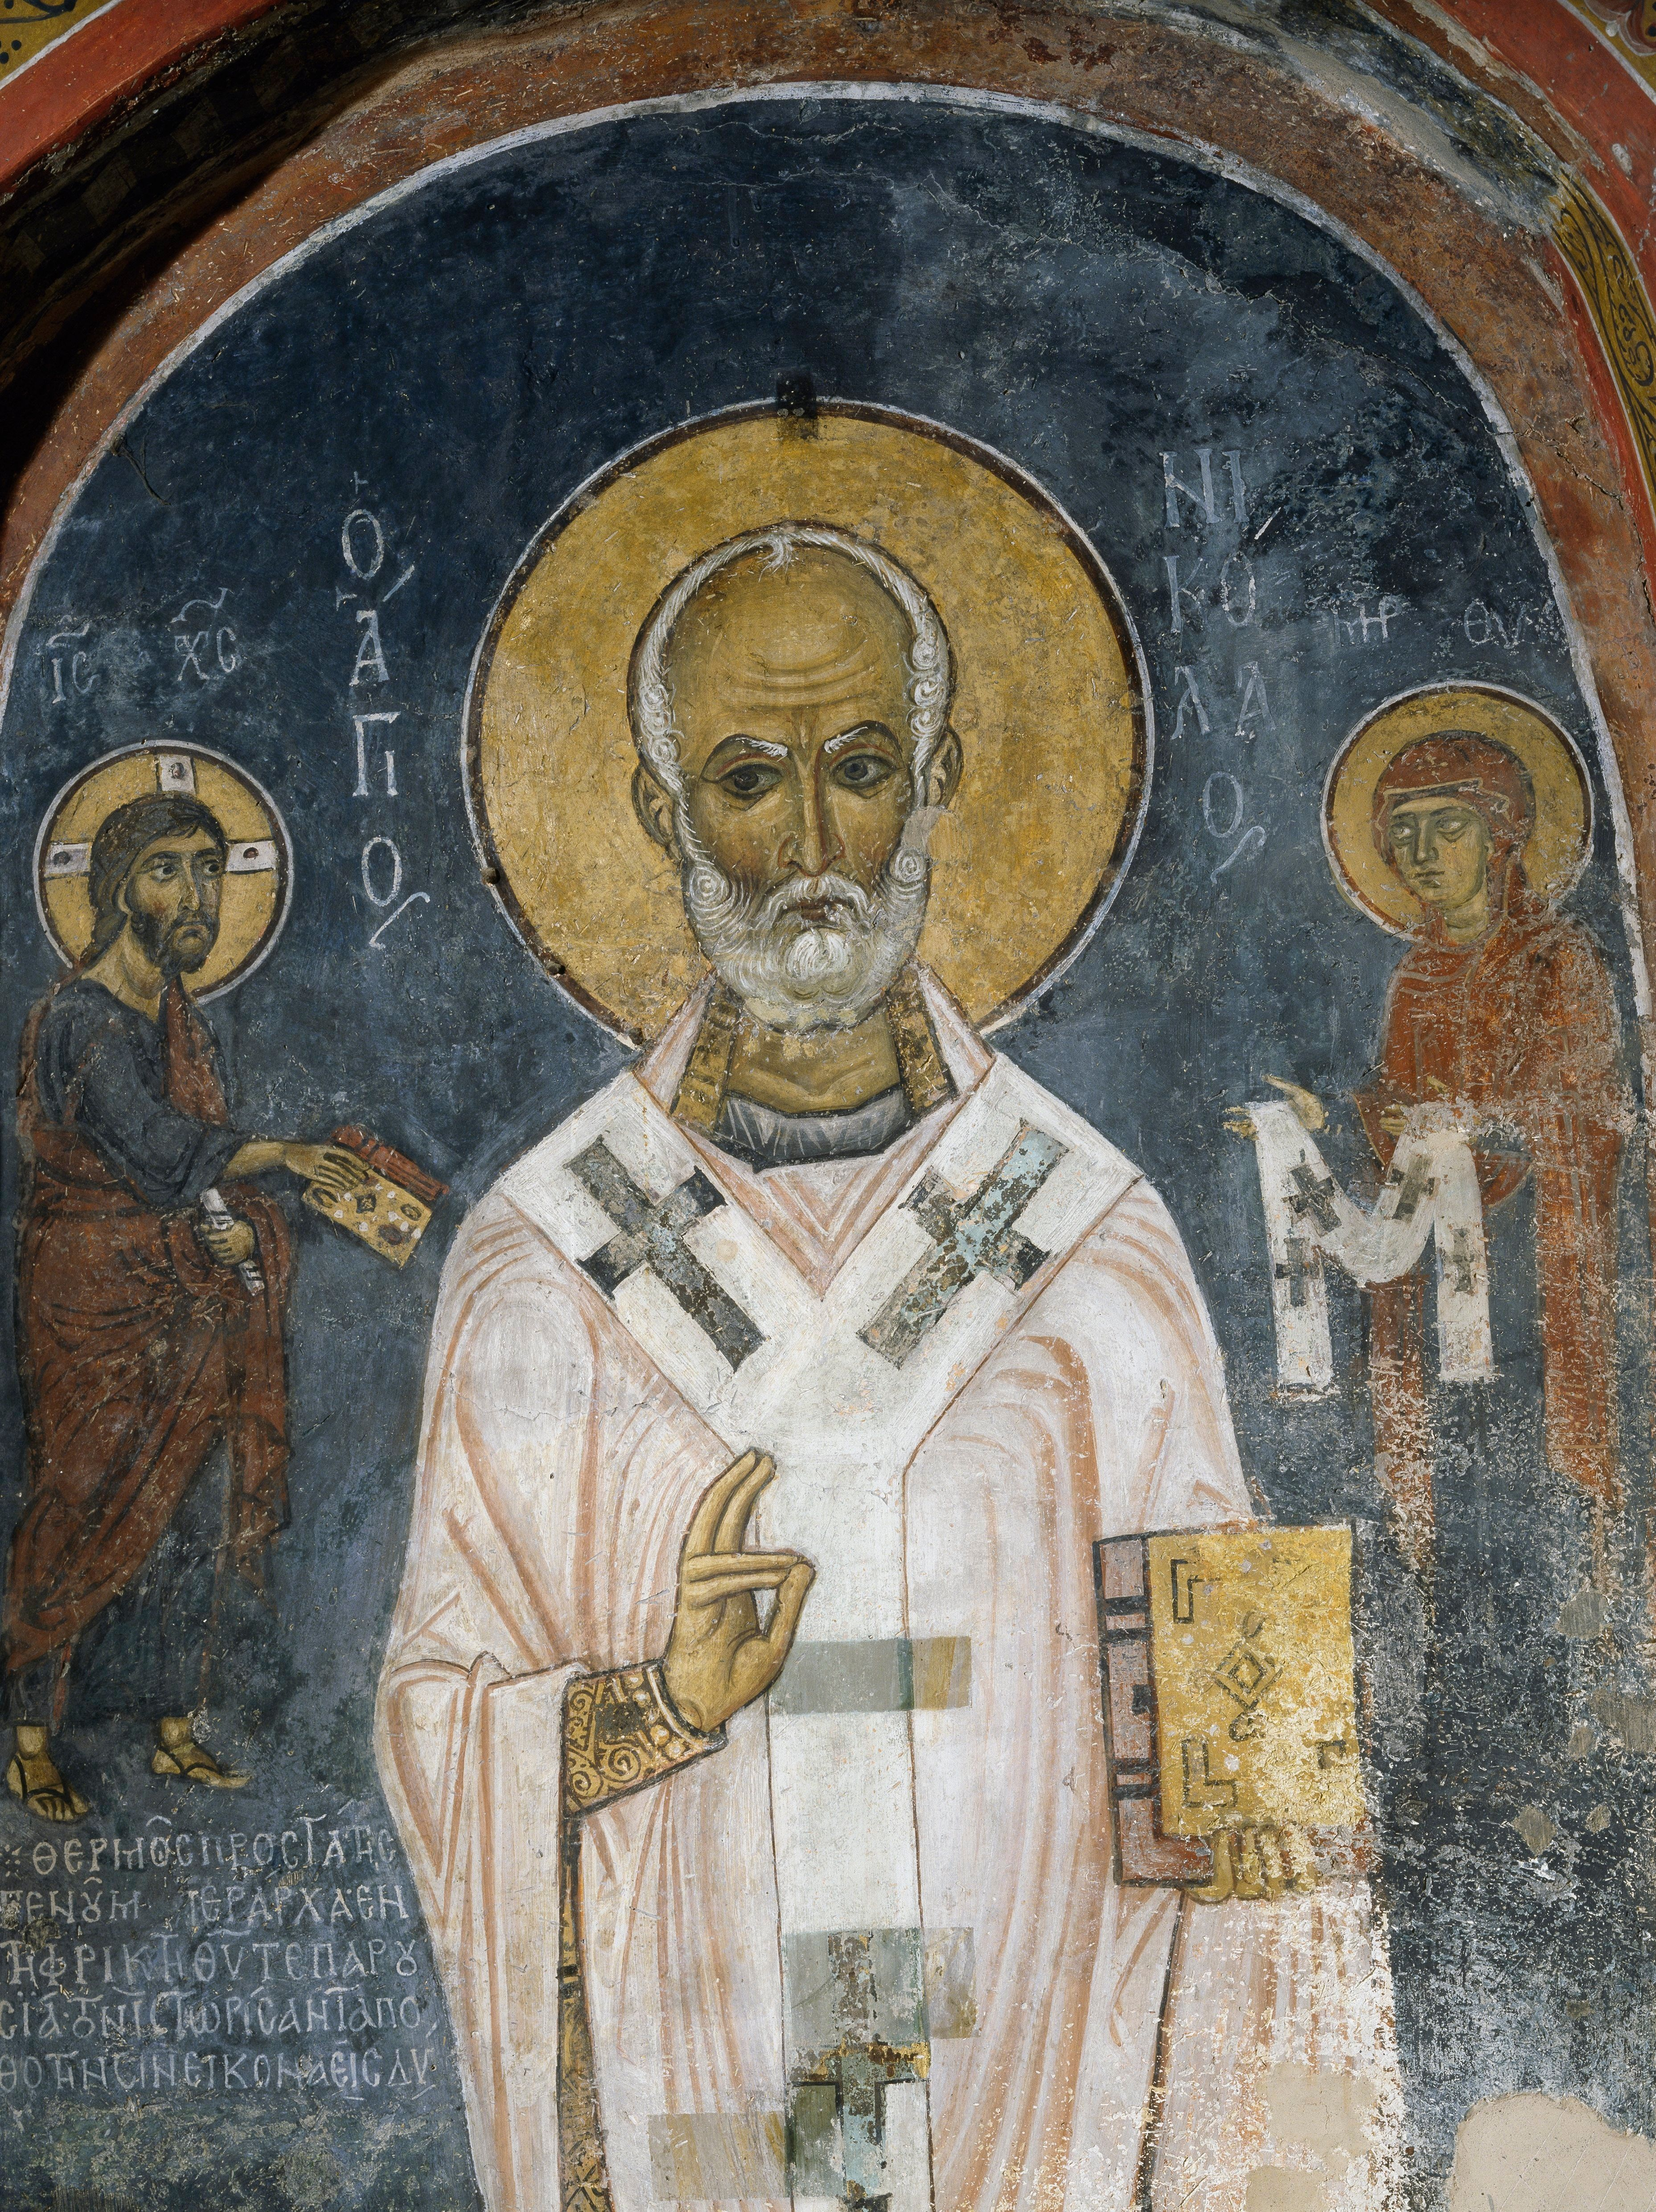 St. Nicholas of Myra is seen in this 12th-century fresco. The saint's acts of generosity, particularly to children, inspired